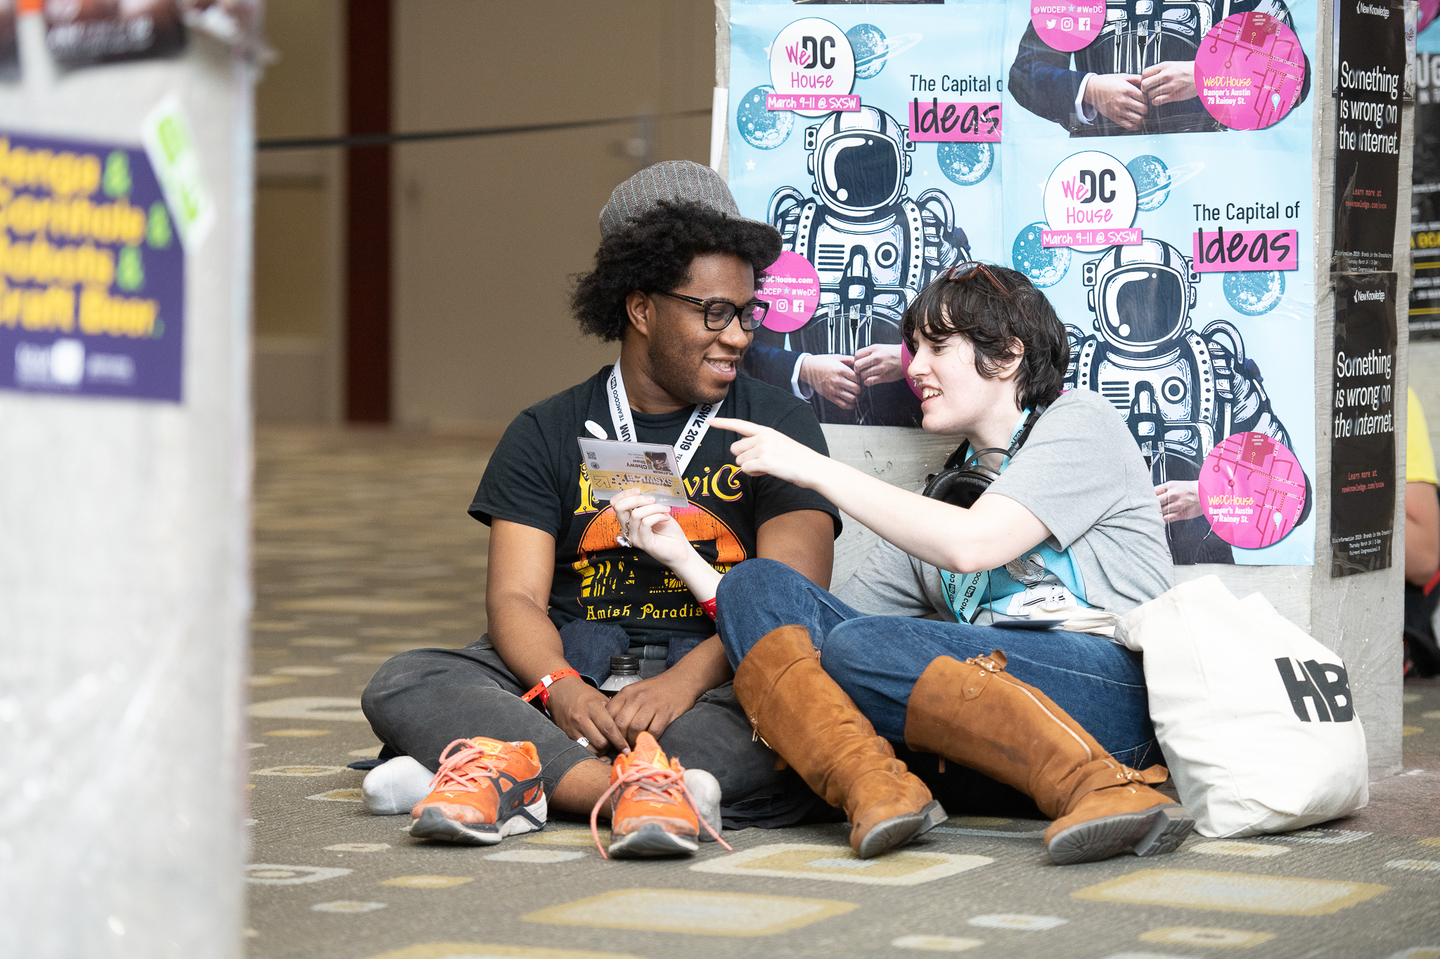 SXSW's footprint is large, so don't forget to stop and rest your feet. Photo by Adam Kissick